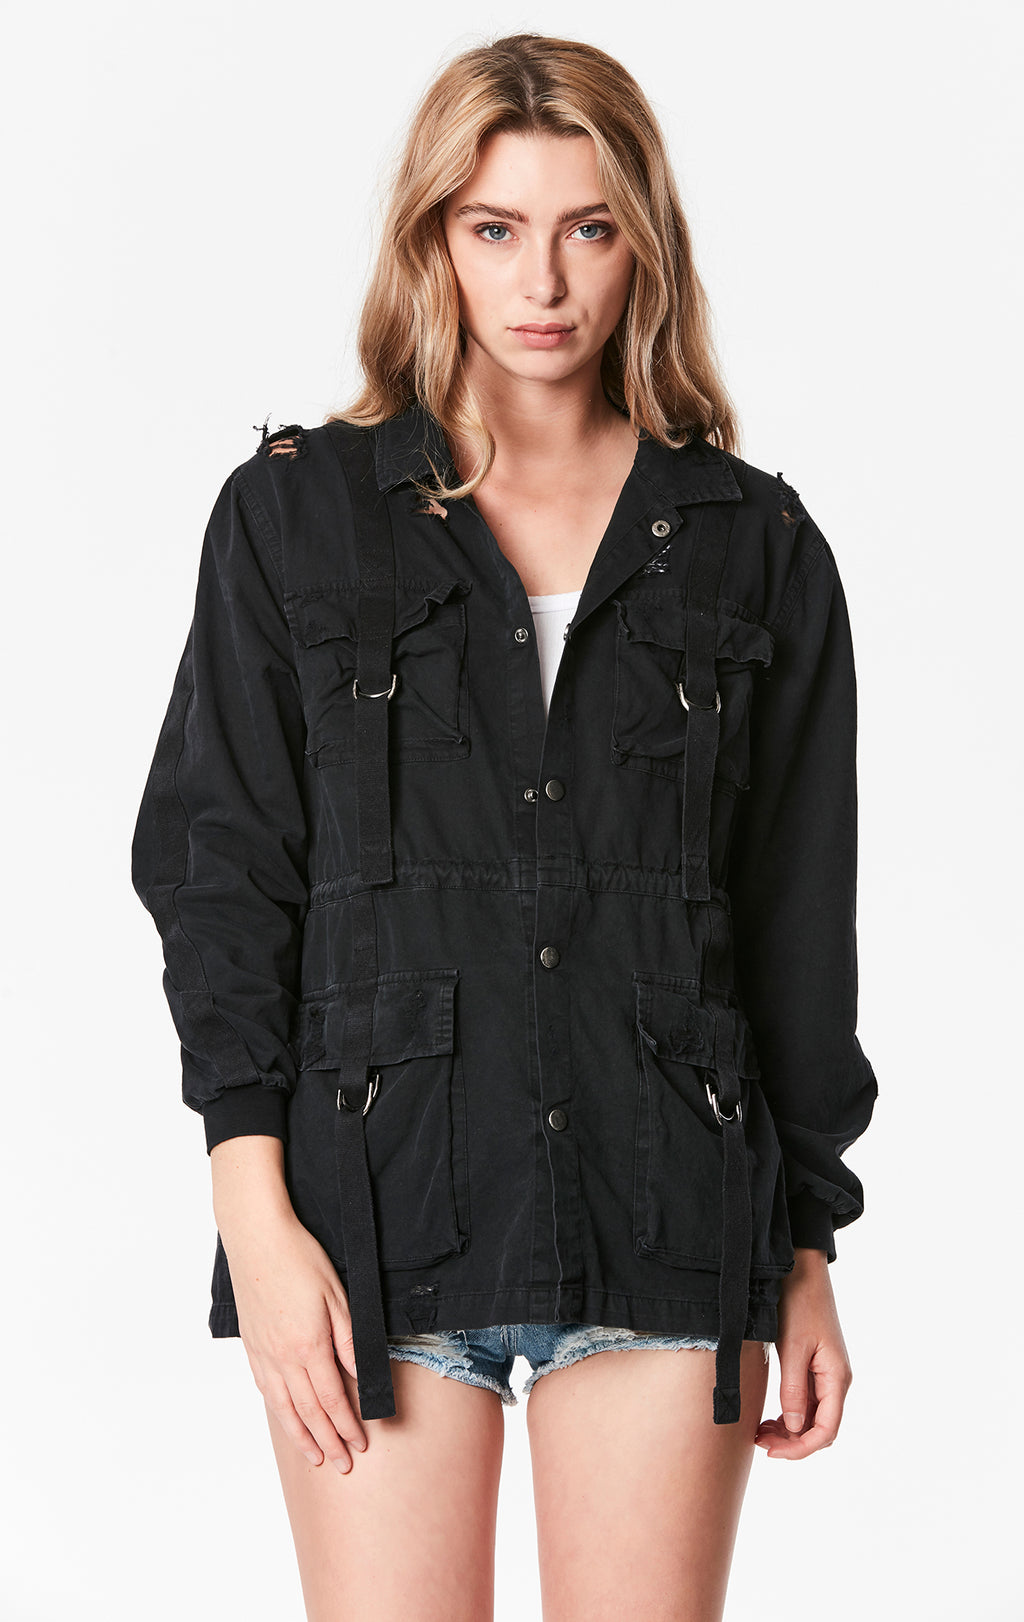 CARGO POCKET WORK JACKET